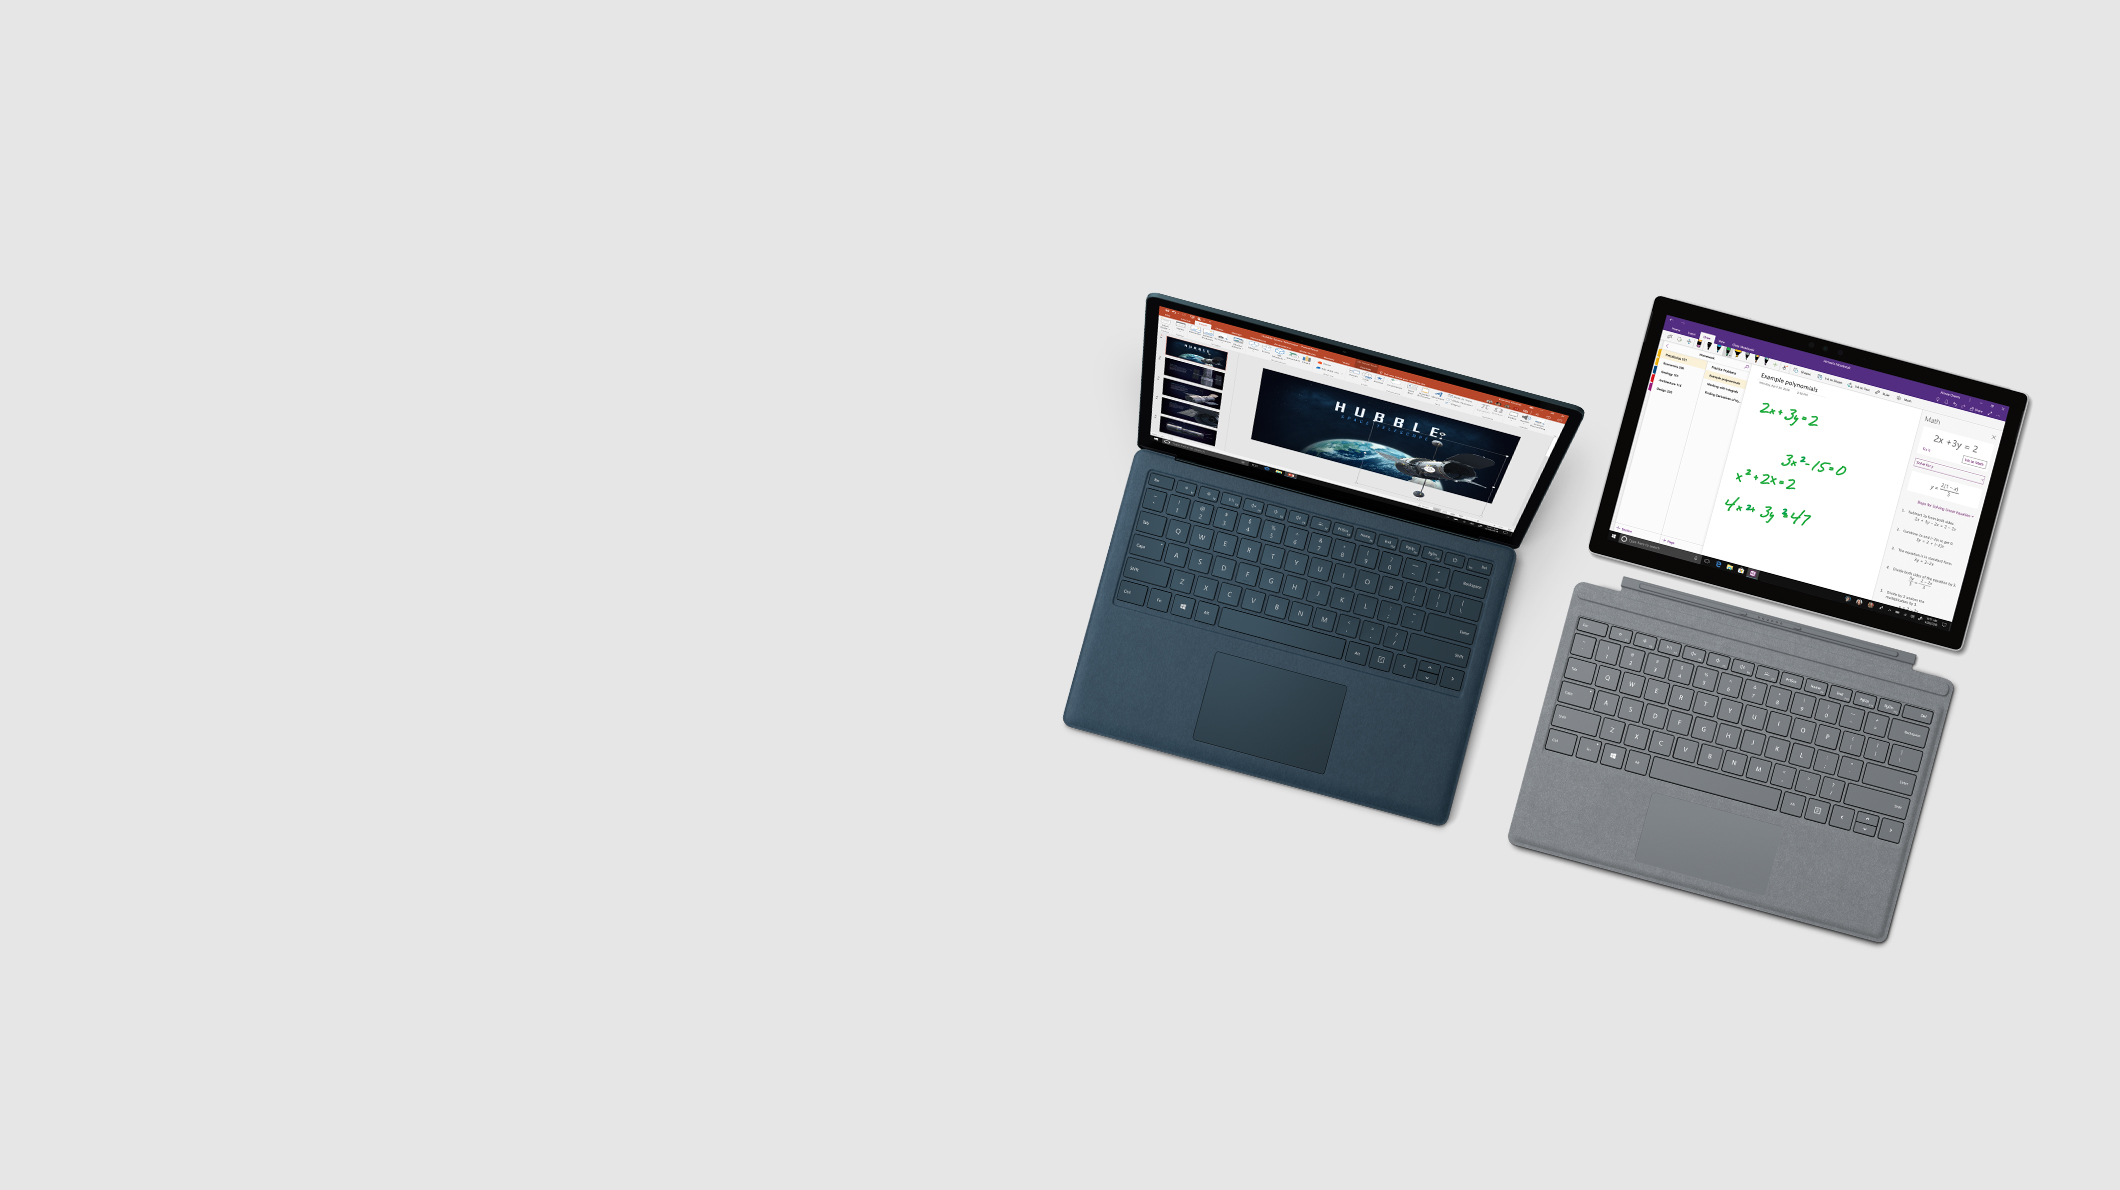 Surface Laptop and Surface Pro with education focused screens